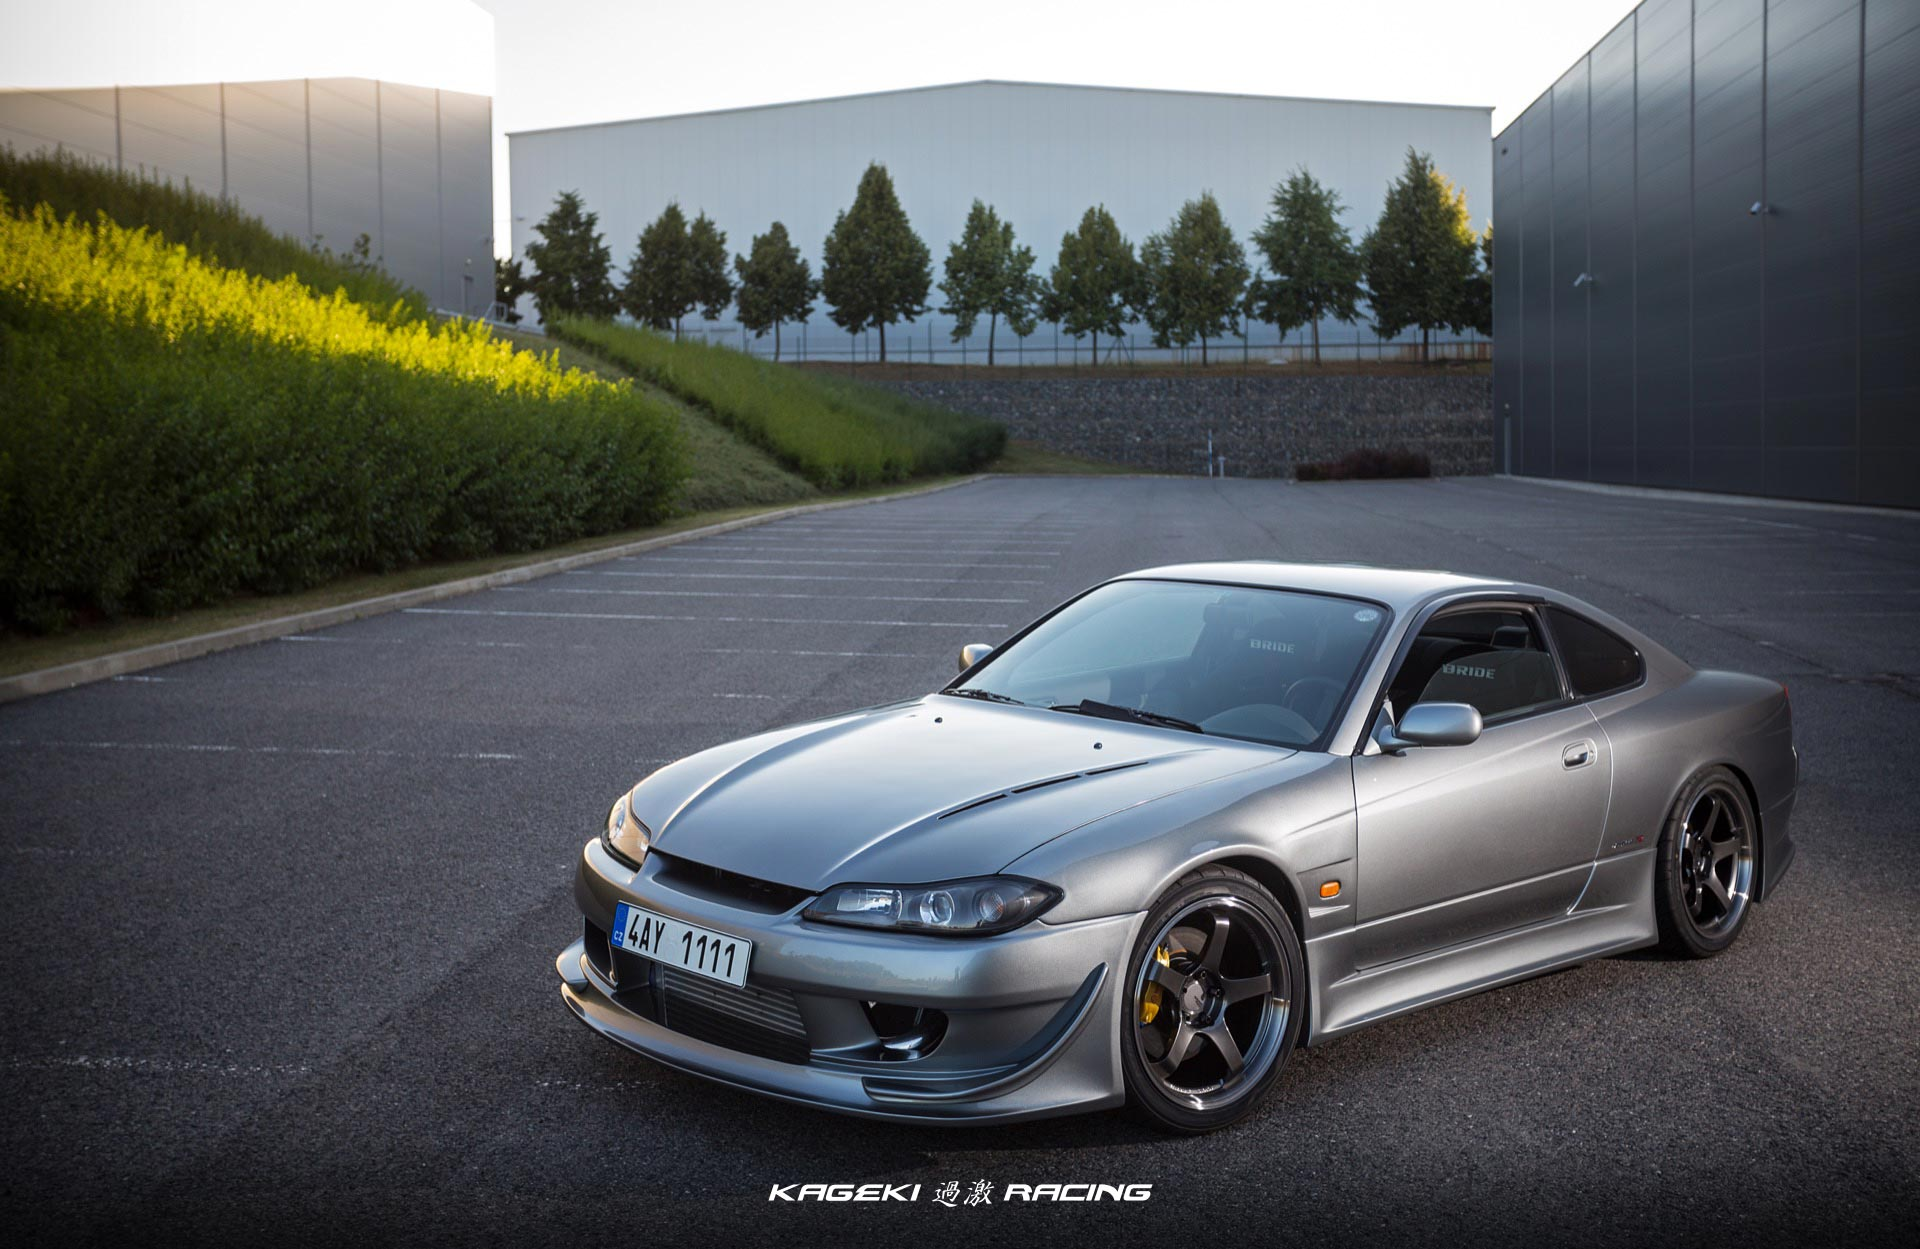 Lhd Nissan Silvia S15 Kageki Racing Expensive Toys For